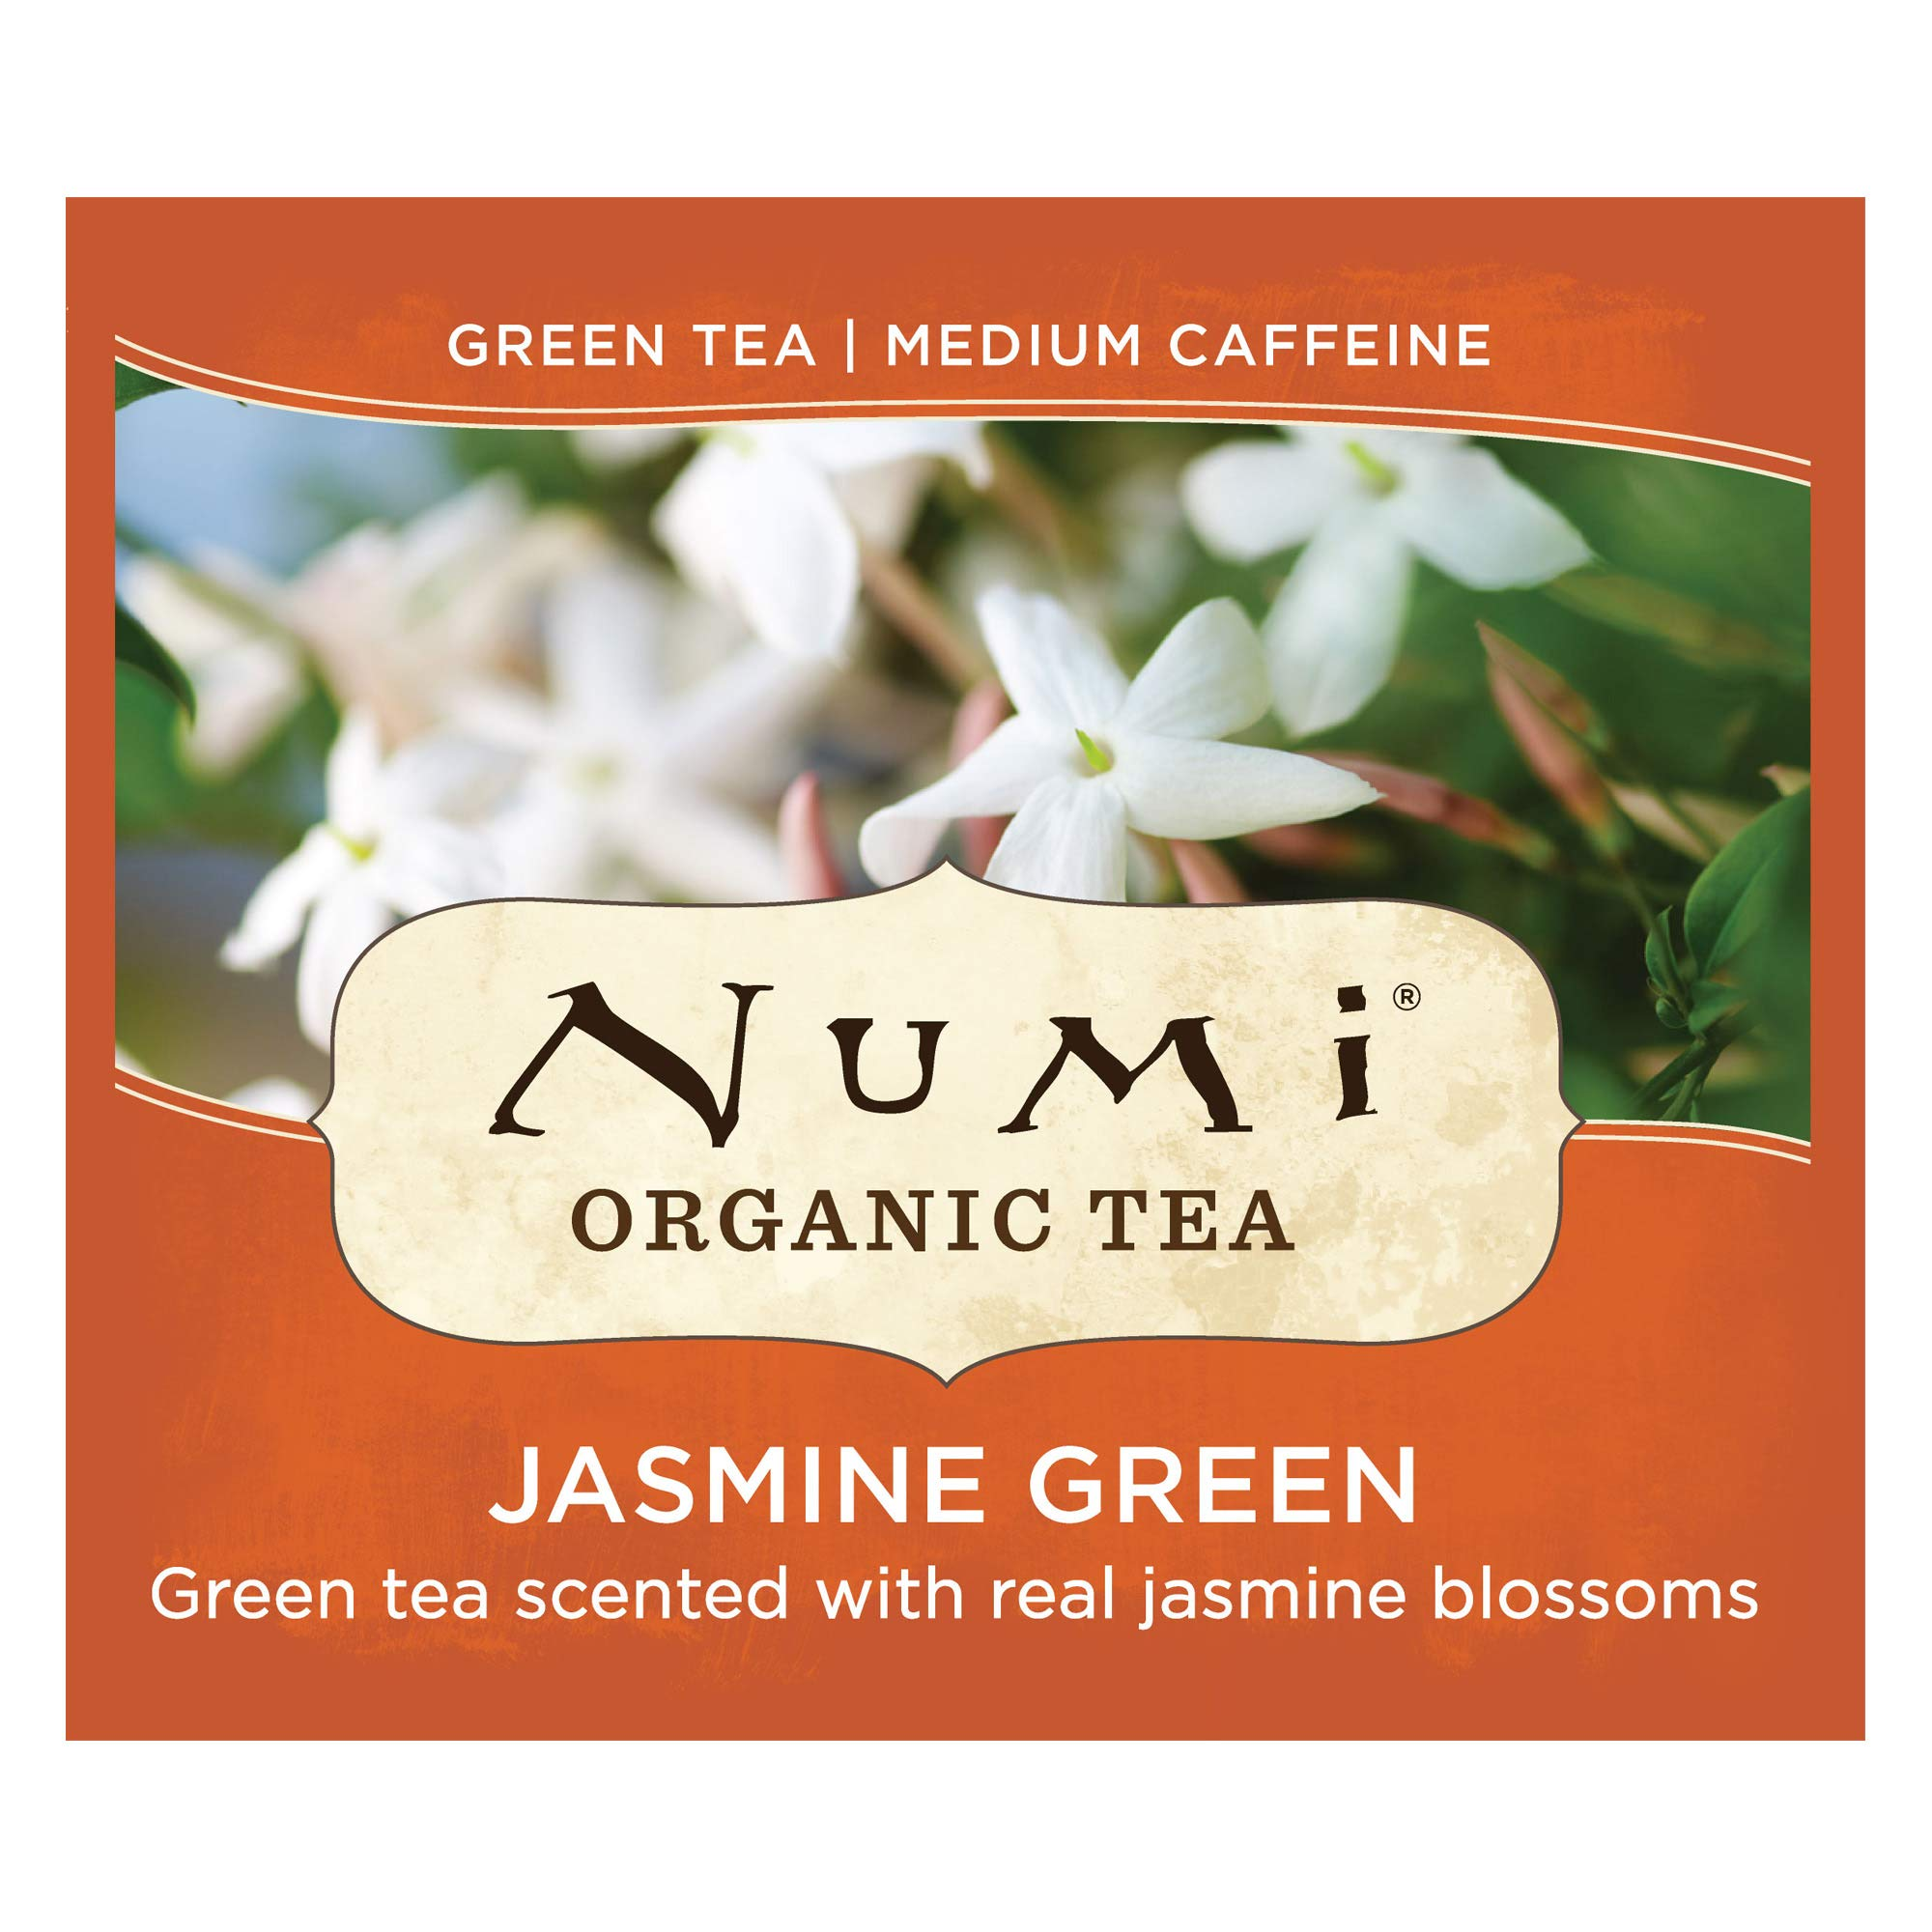 Numi Organic Tea Jasmine Green, 100 Count Box of Tea Bags (Packaging May Vary) by Numi